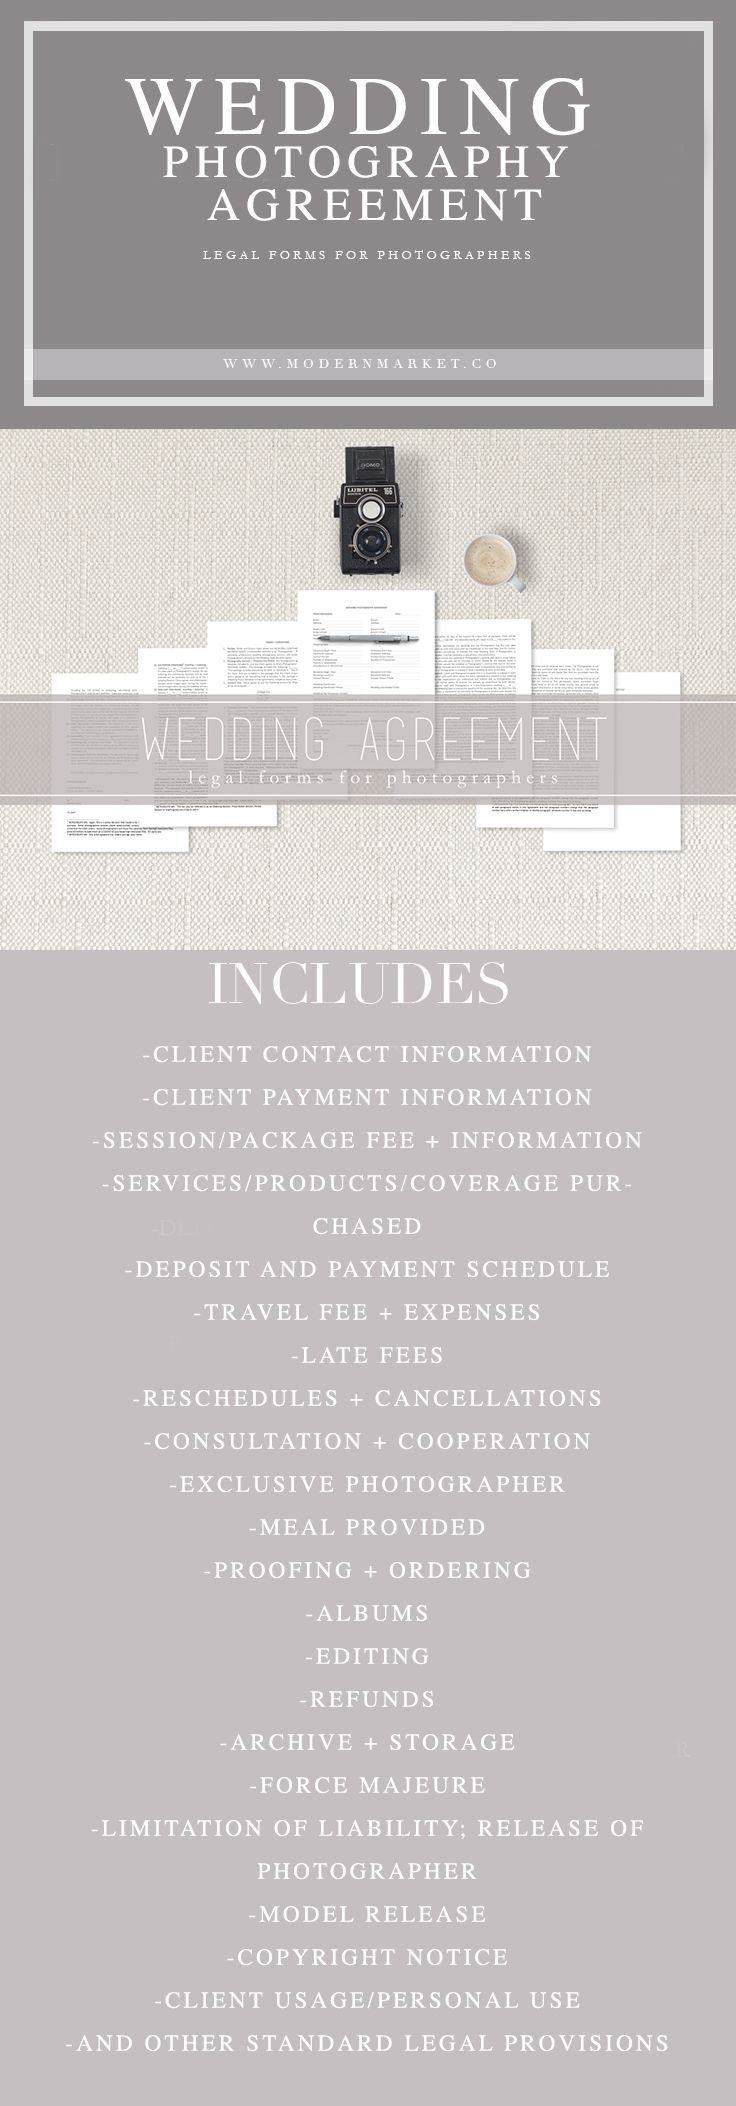 16 Wedding Photography Pricing Ideas Photography Pricing Wedding Photography Pricing Wedding Photography